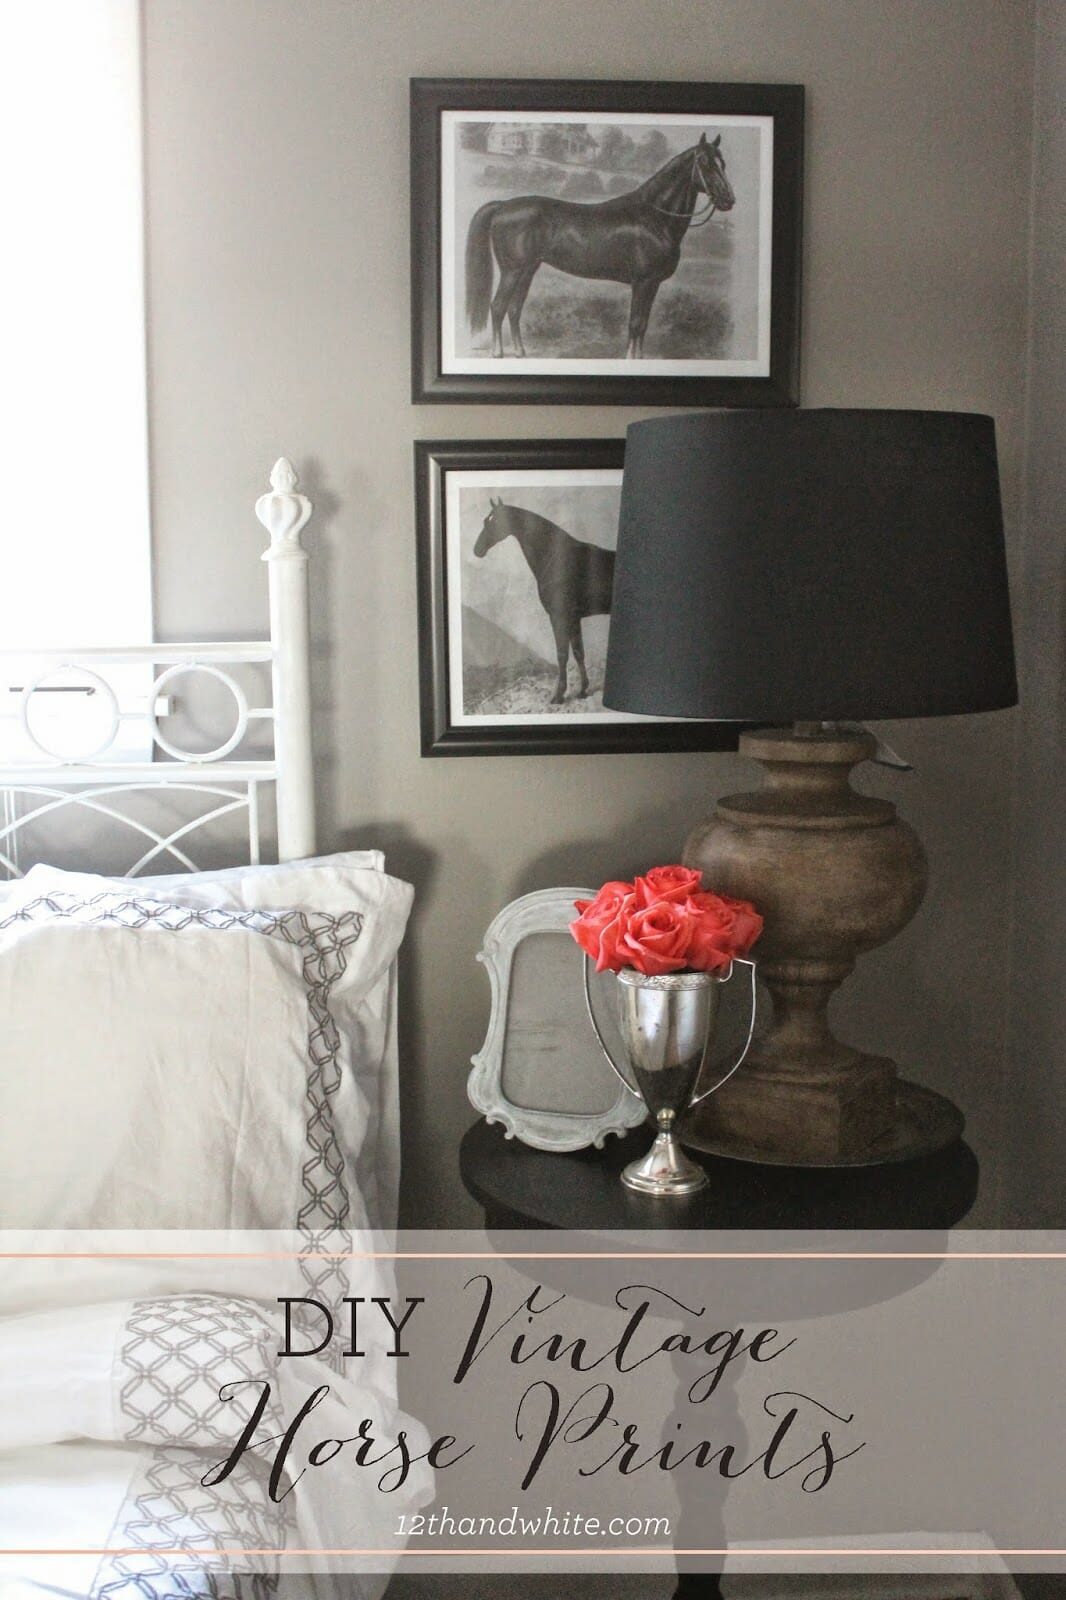 DIY Vintage Horse Prints {And Our Guest Bedroom}